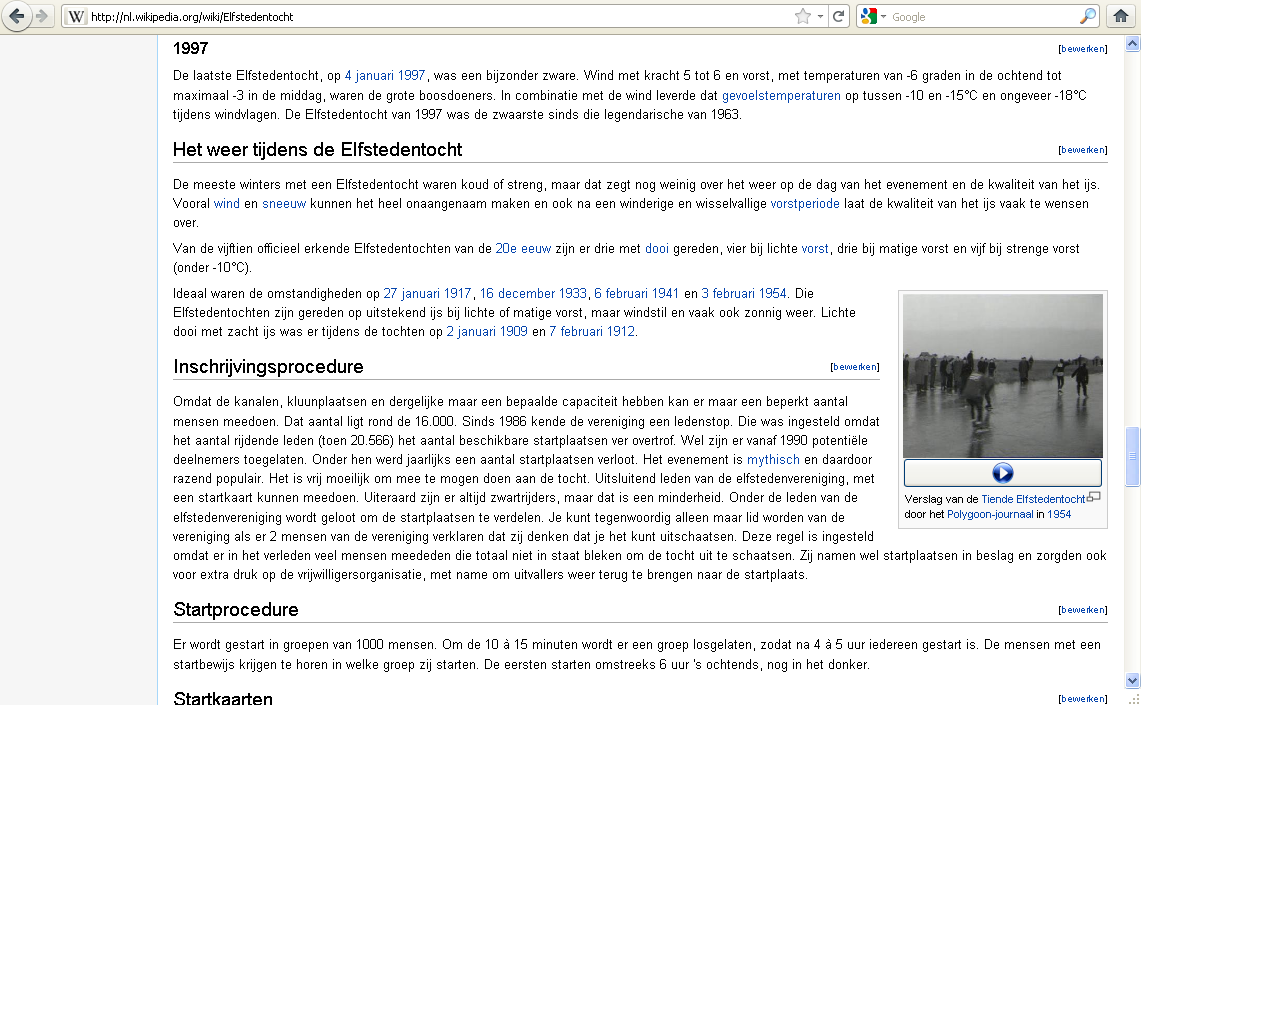 A video from Open Images on the Wikipedia lemma 'Elfstedentocht'